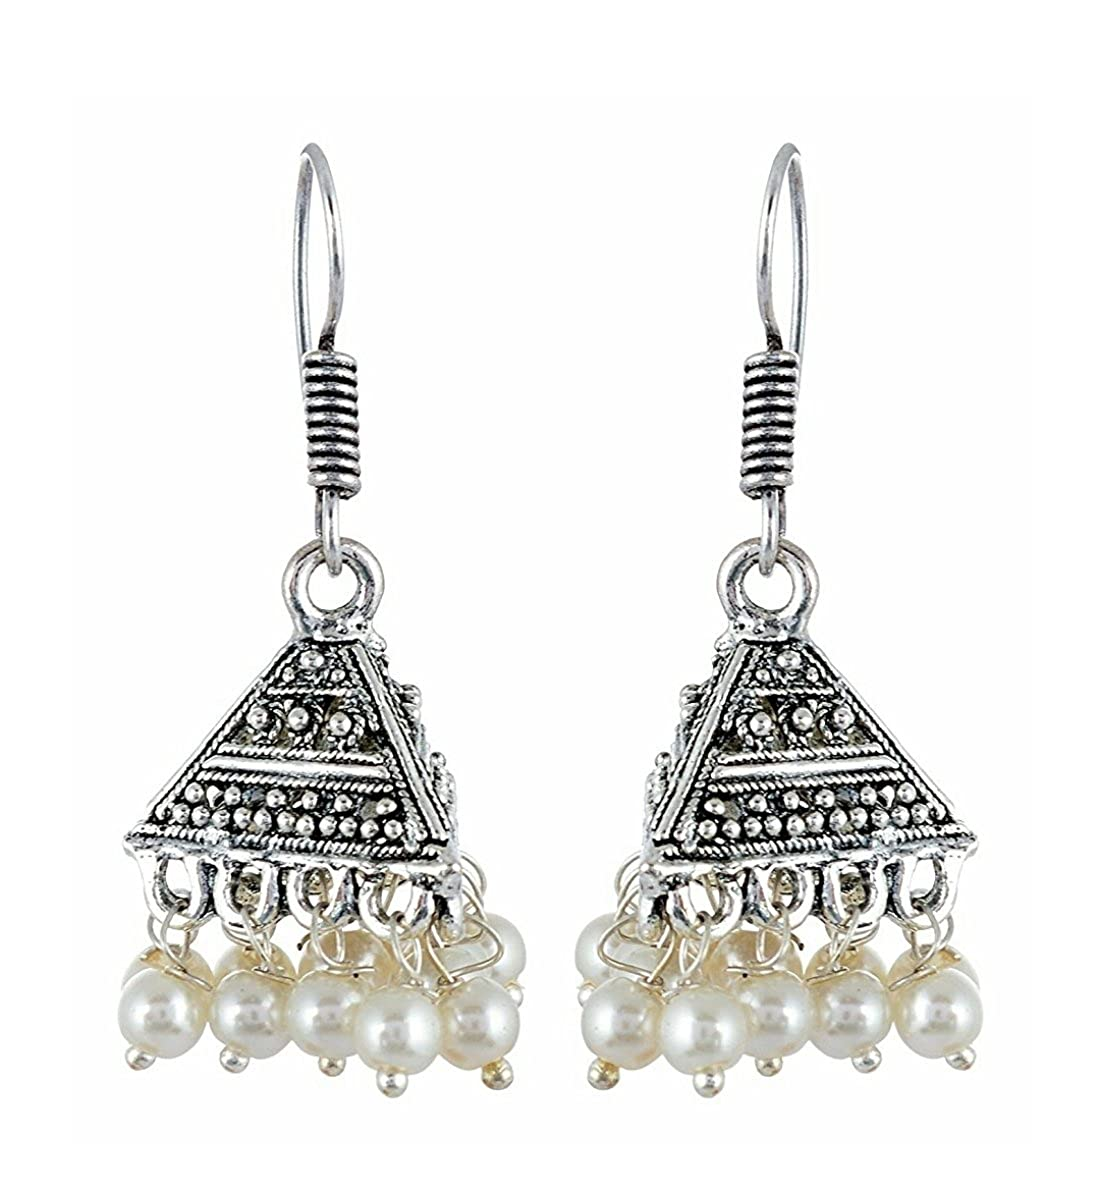 Subharpit Light Weight White Beads Metal Traditional Indian Dangle Earring for Woman and Girls